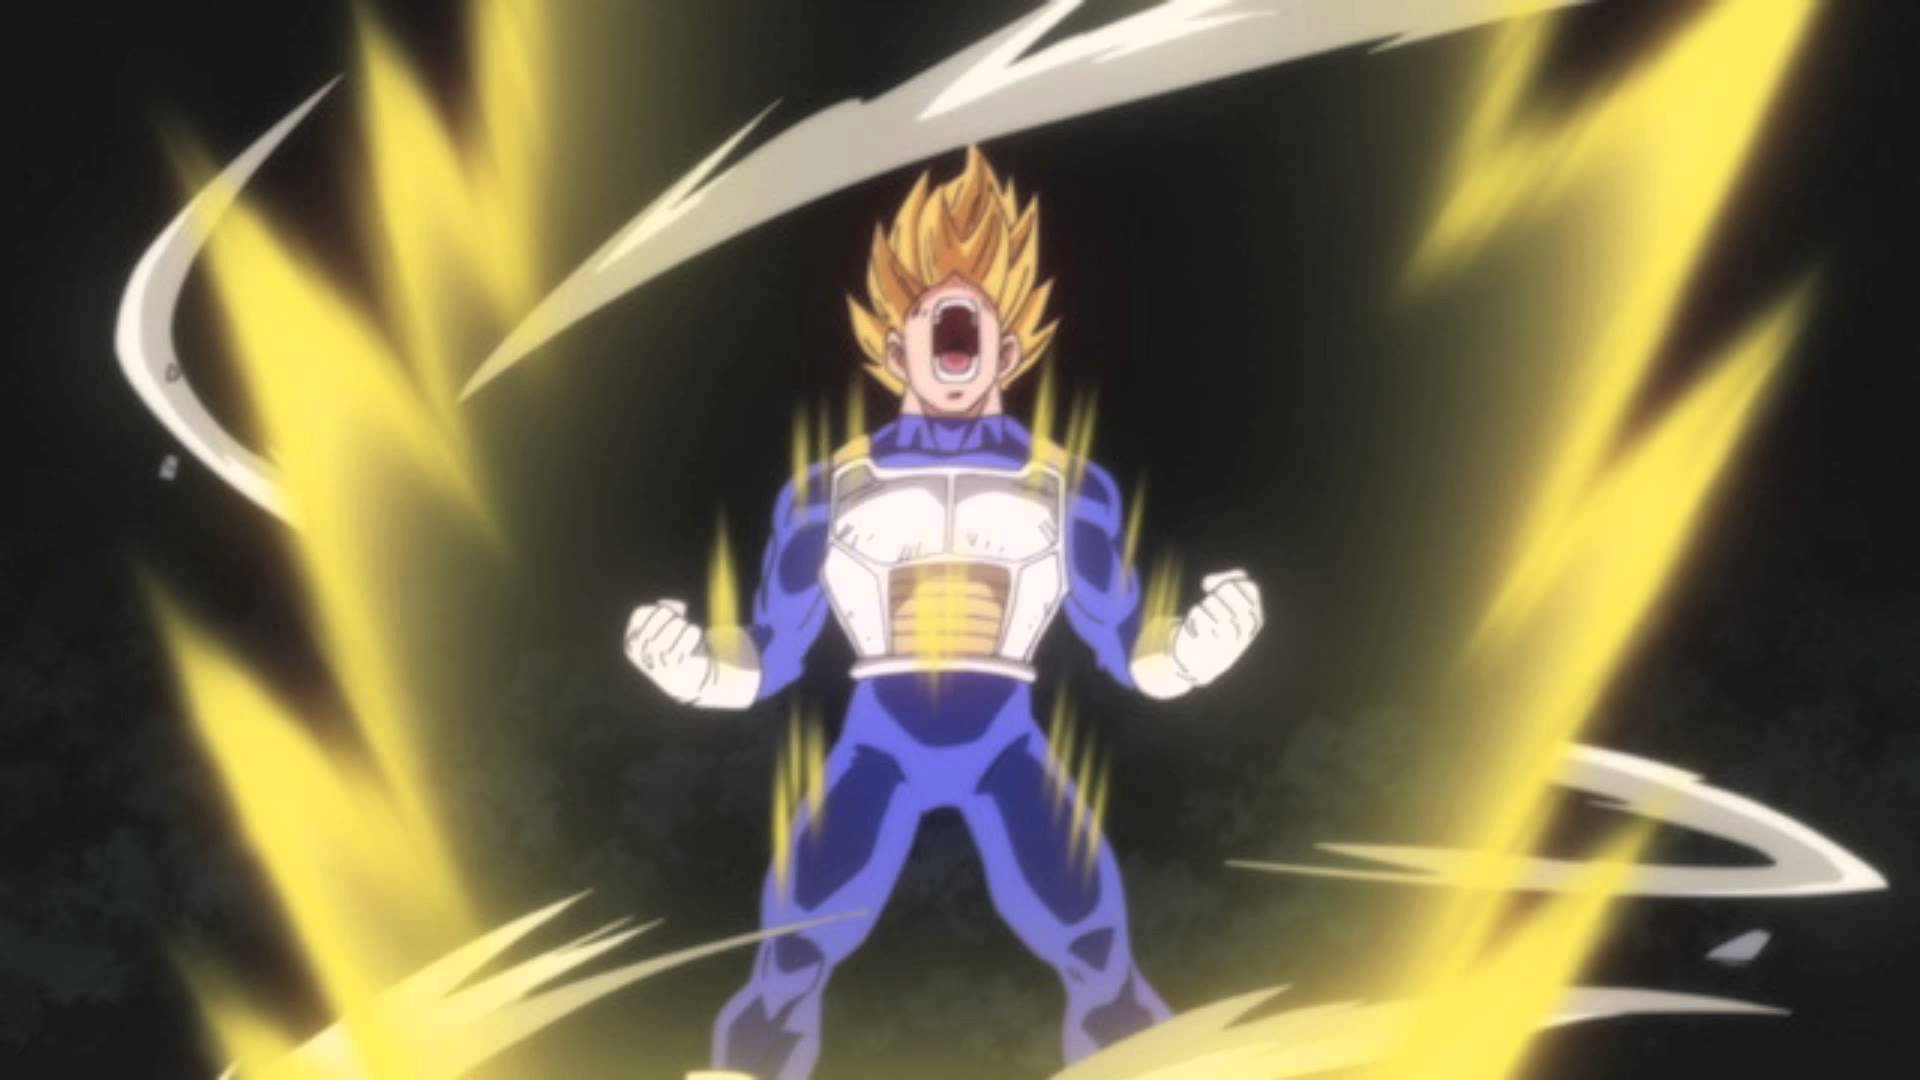 Dragon Ball Z Battle of Gods Soundtrack-Vegeta Enraged